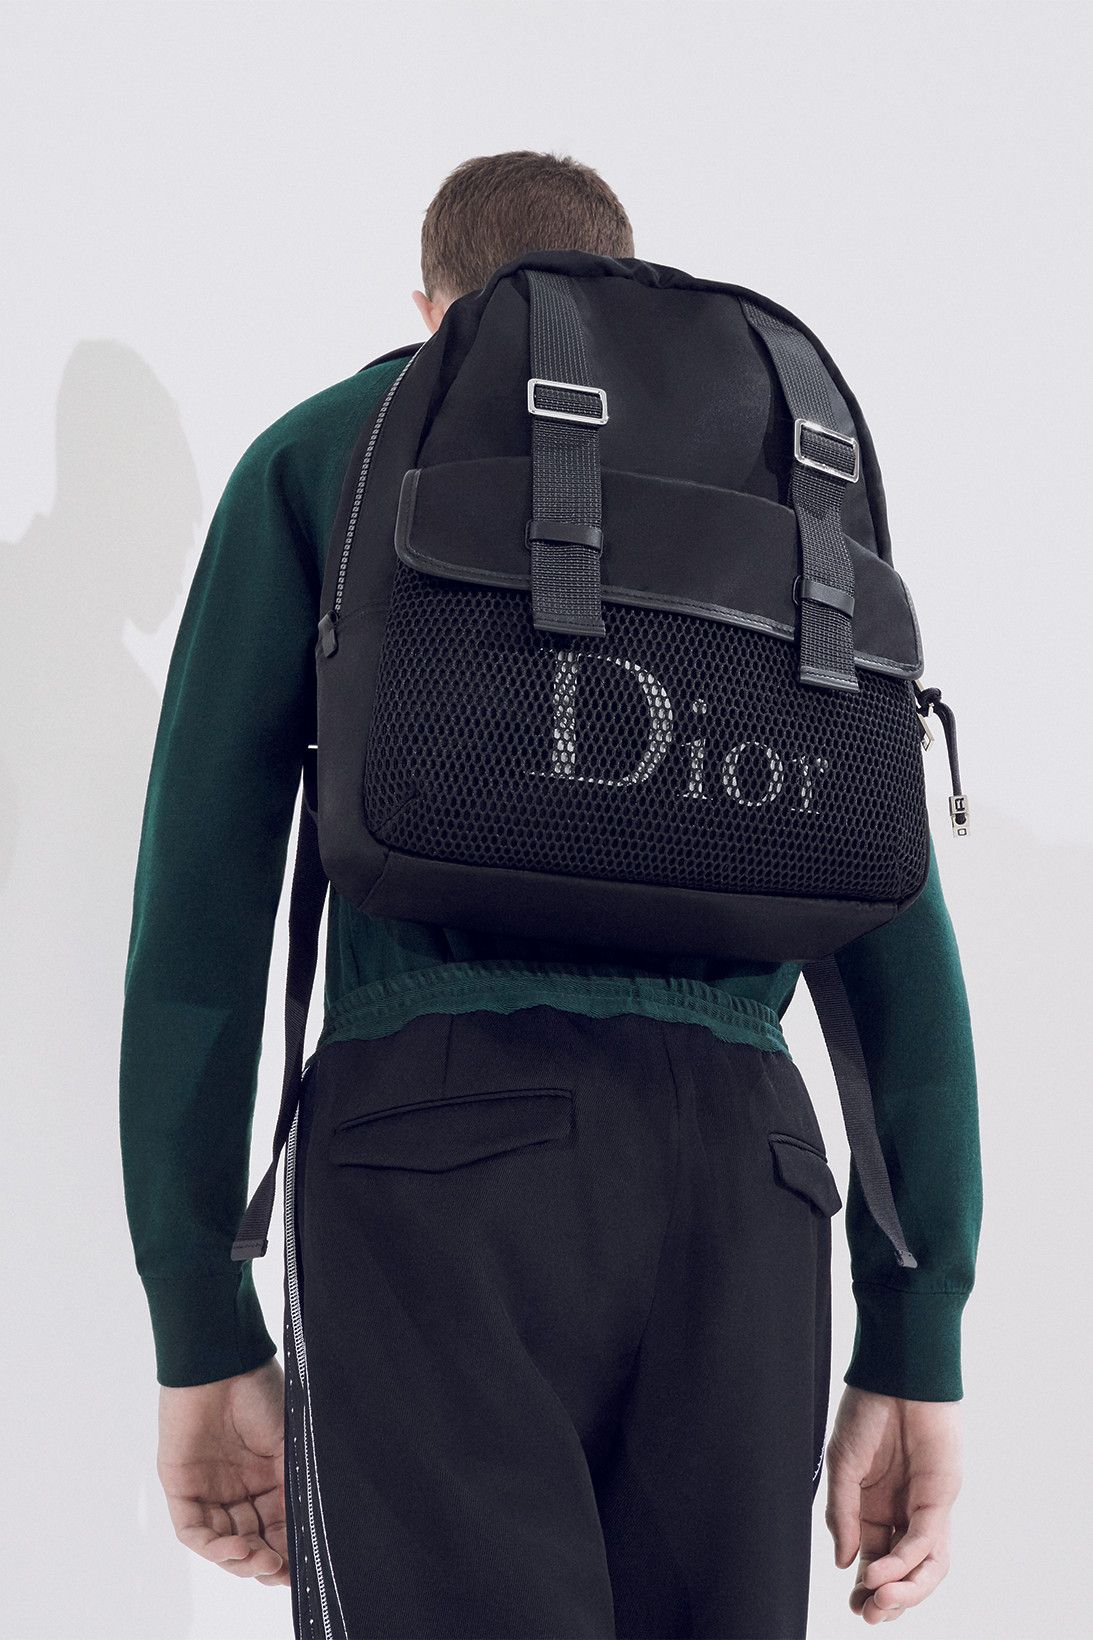 e9c9fe207ab3 Dior Homme Introduces Spring/Summer 2018 Playground Bag Collection ...